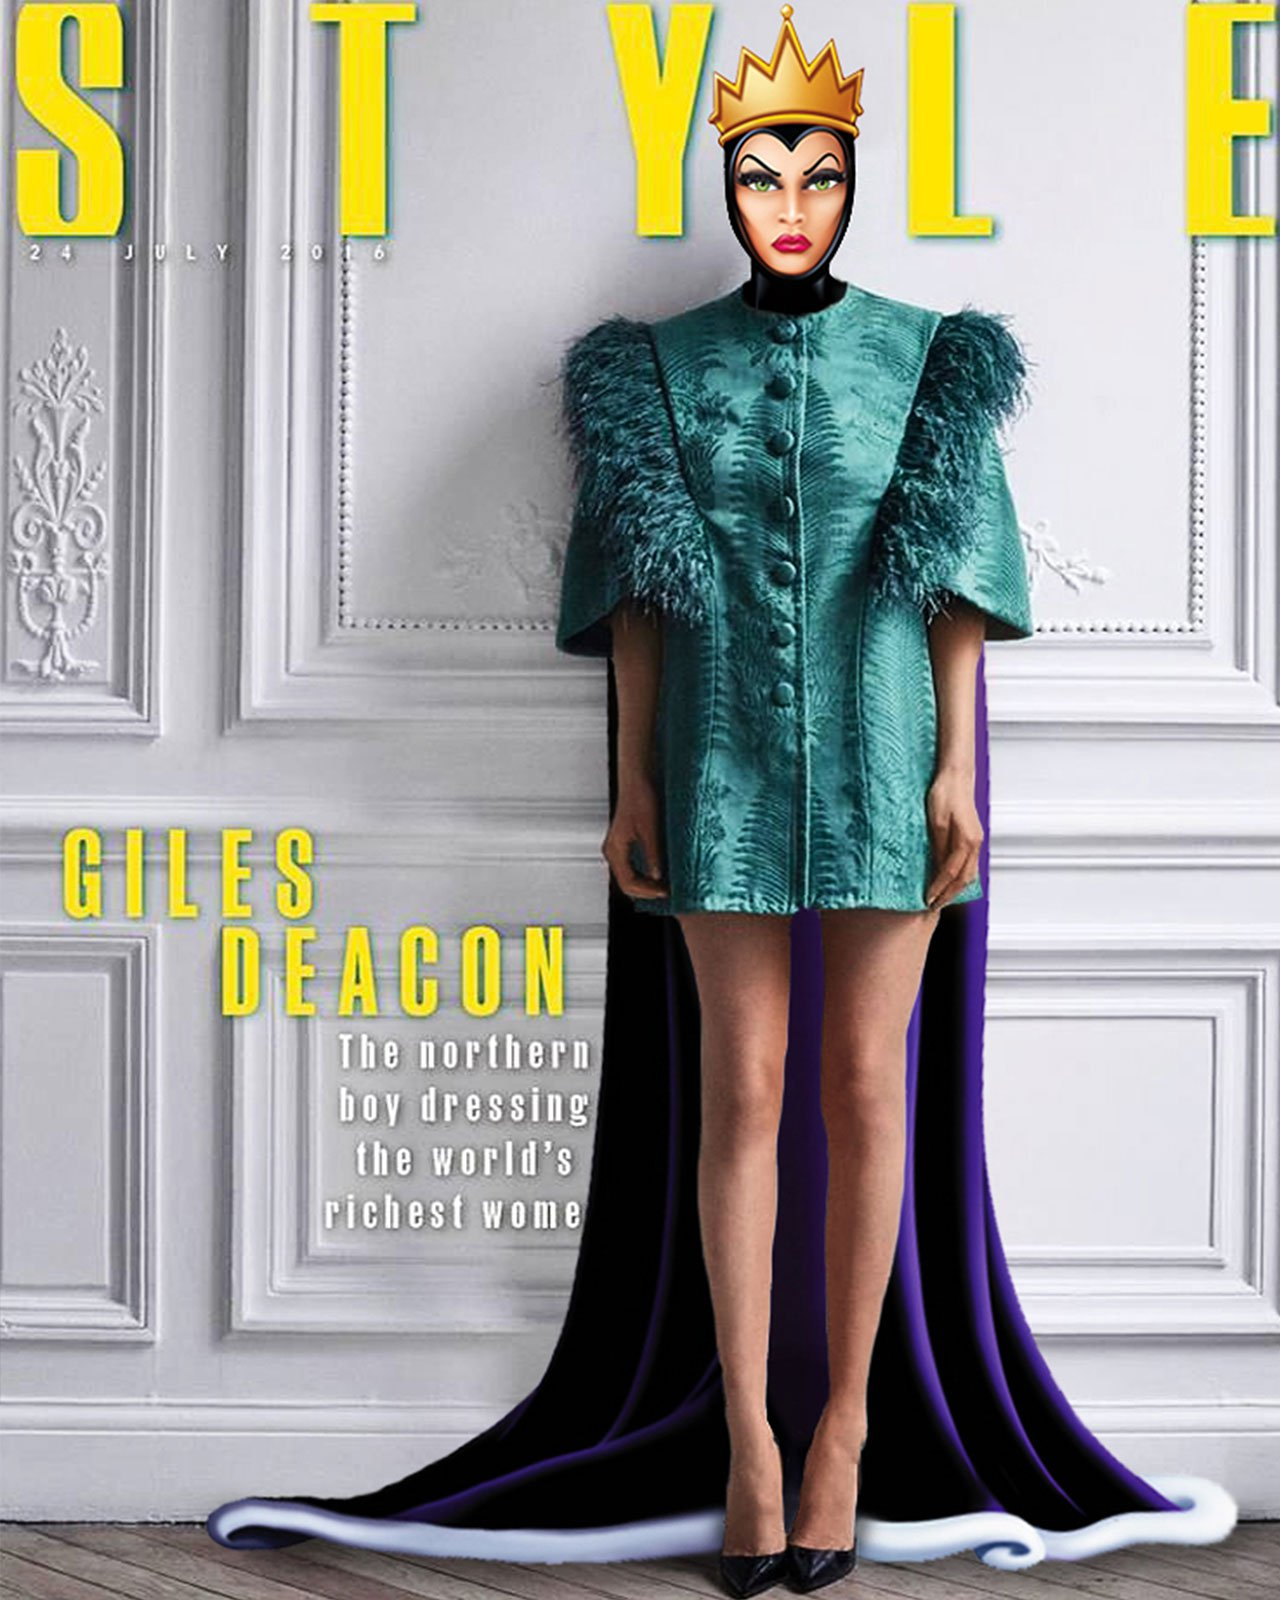 f7_animation_in_reality_by_gregory_masouras_bella_hadid_as_evil_queen_in_giles_deacon_for_the_sunday_times_style_photographed_by_phil_poynter_yatzer